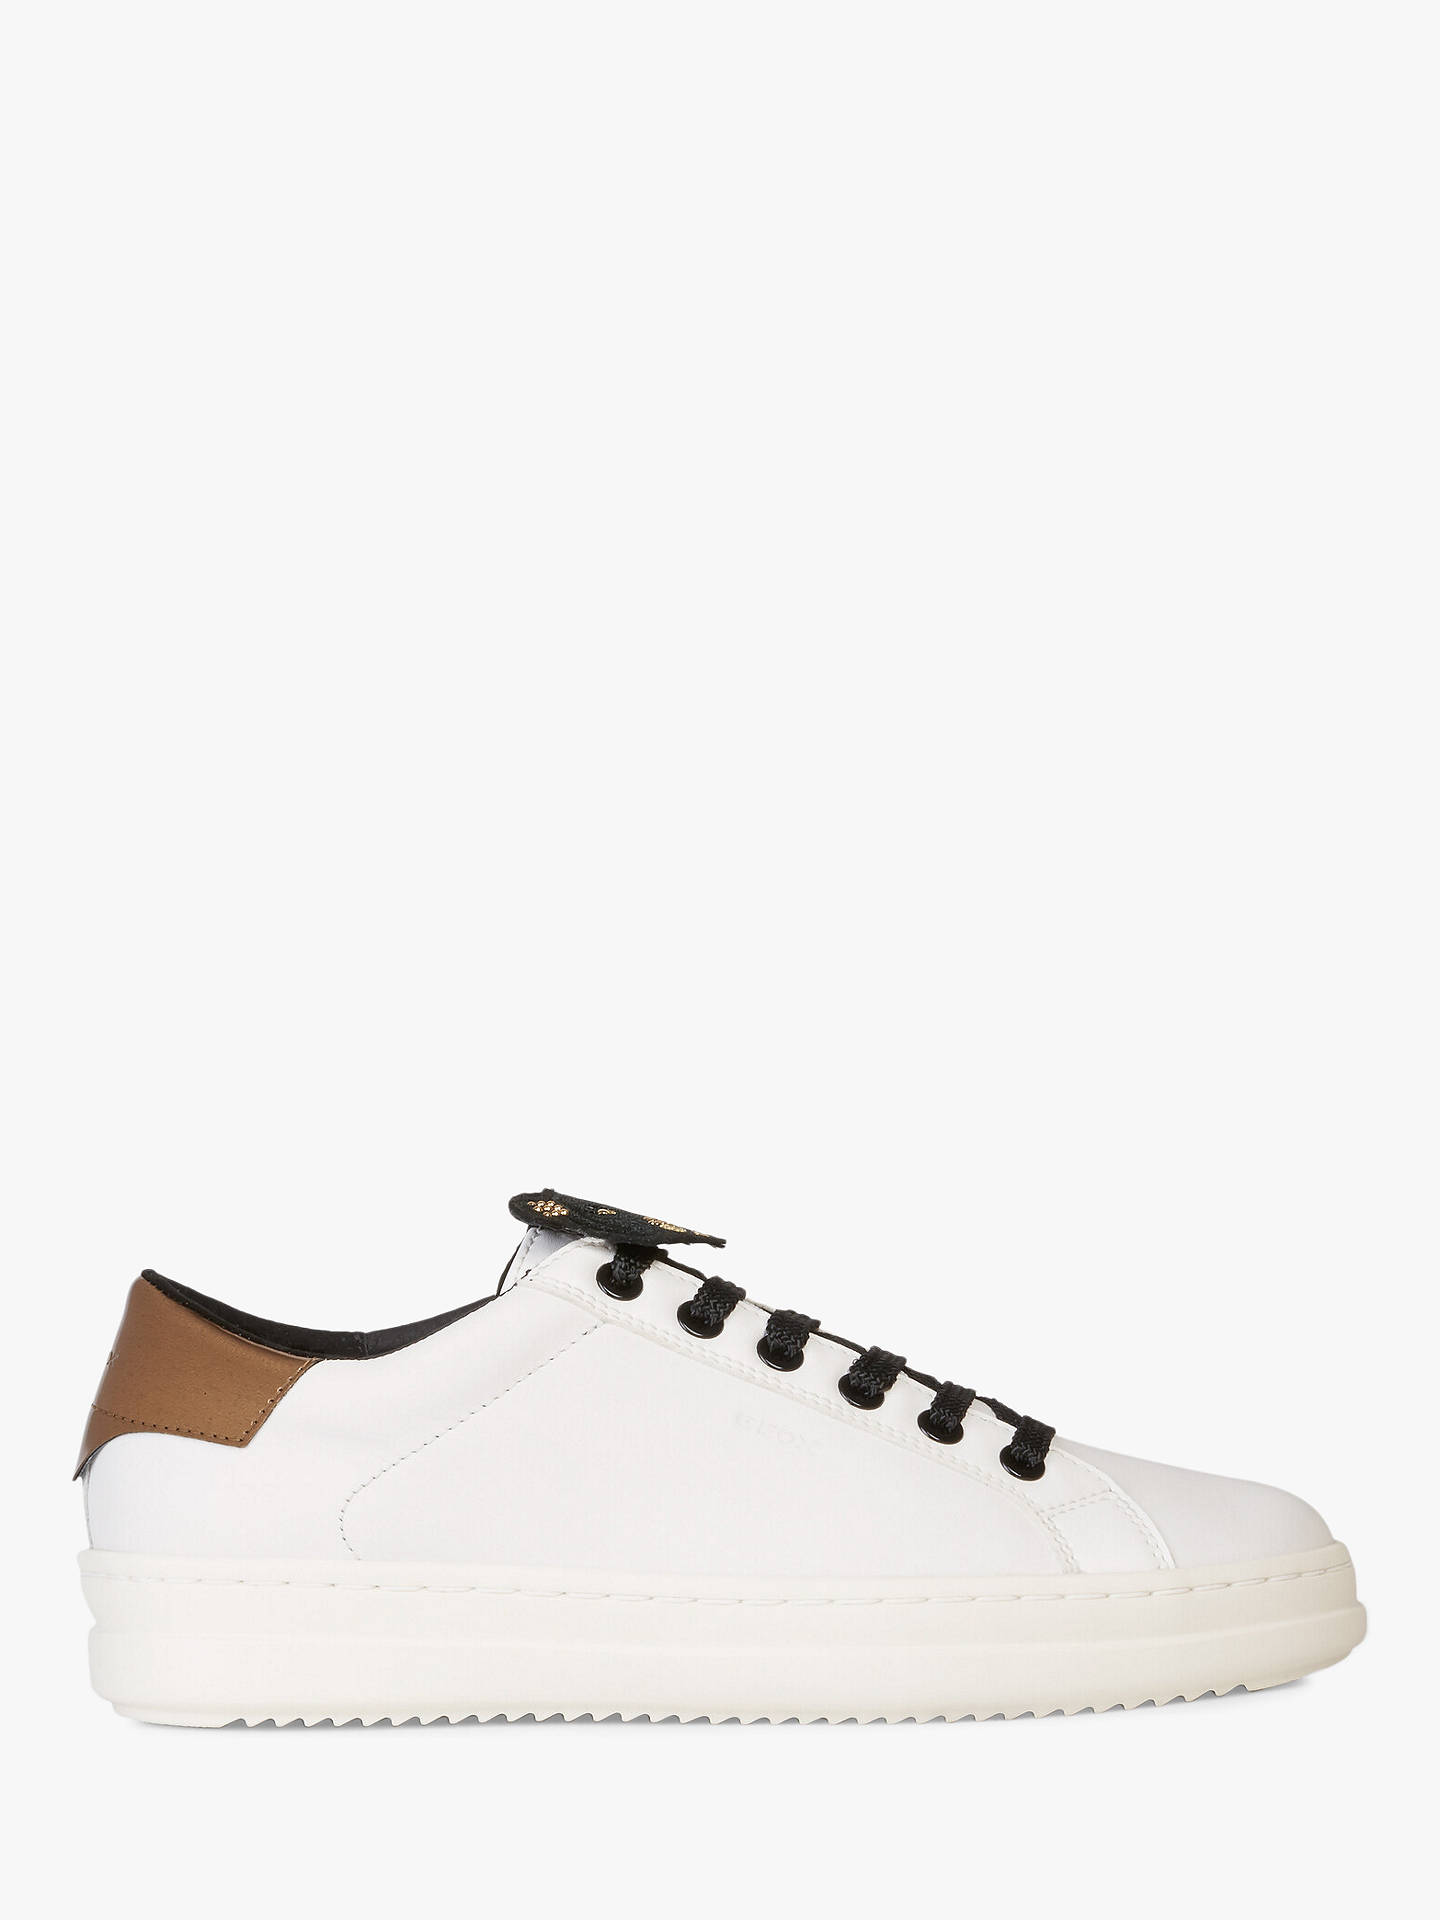 salida online mejor valor moda más deseable Geox Women's Pontoise Lace Up Trainers, White at John Lewis & Partners